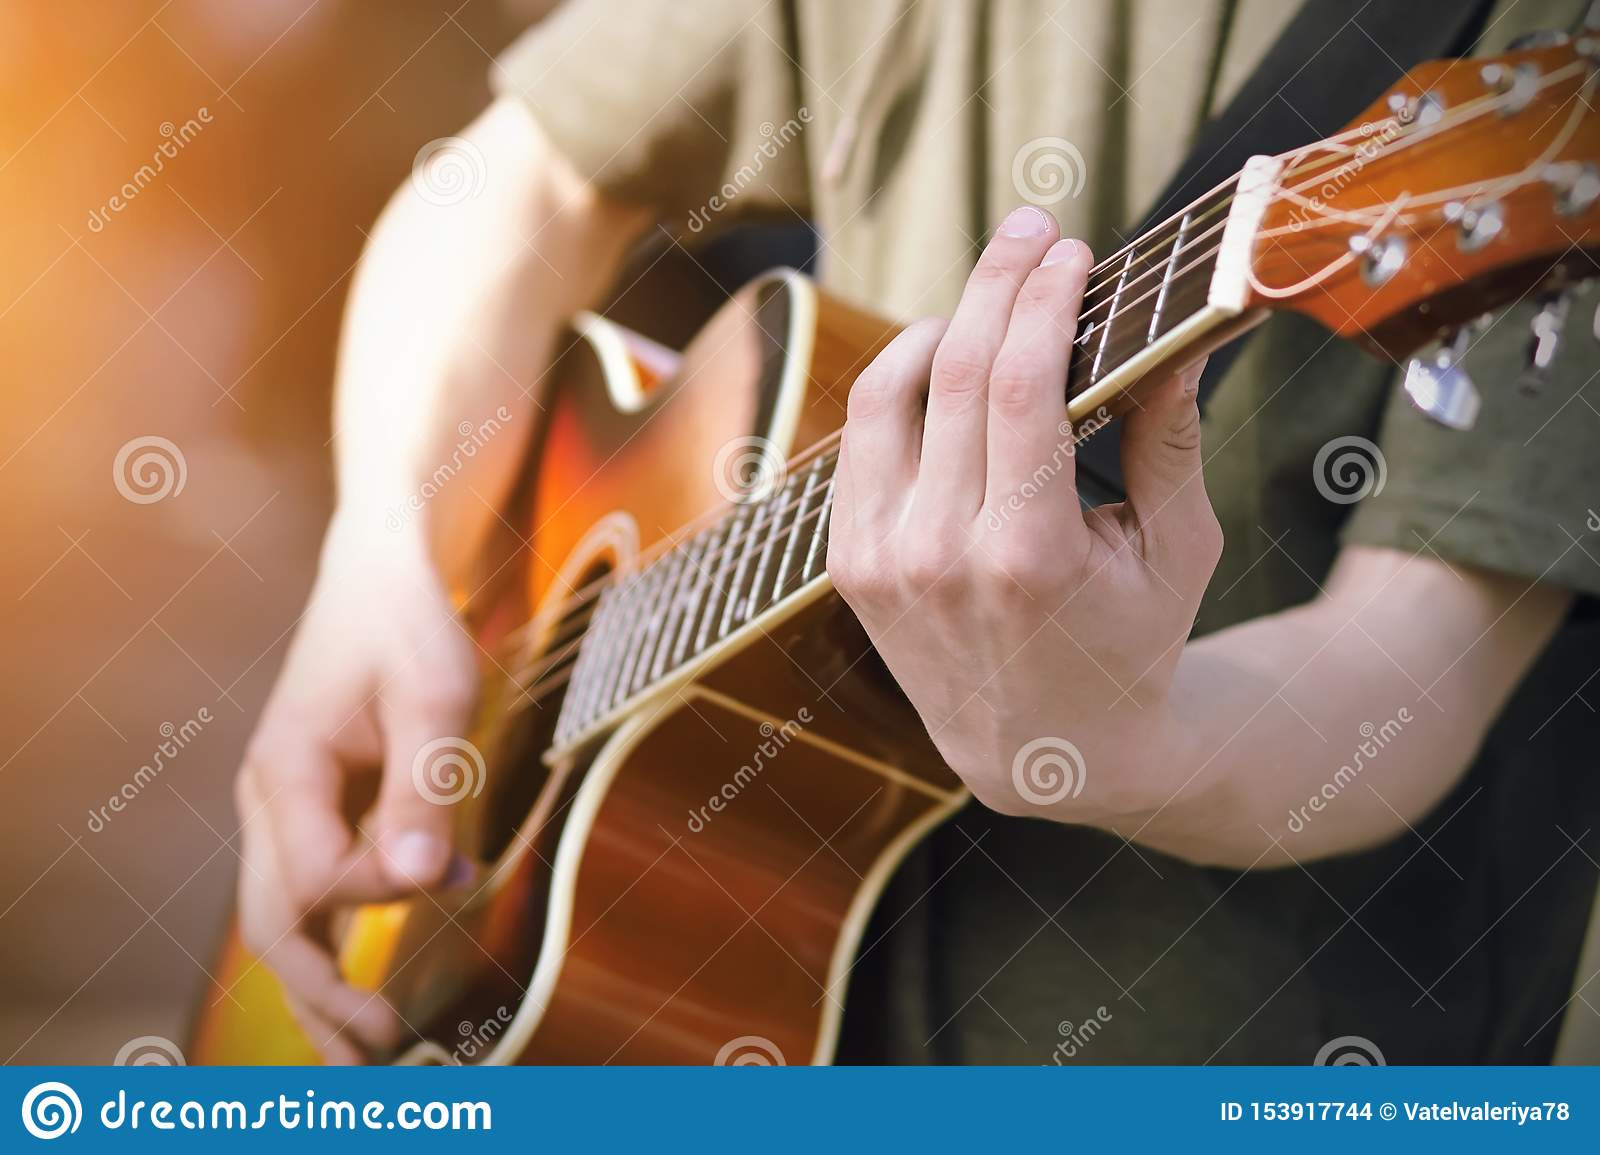 The guy plays an orange acoustic six-string guitar